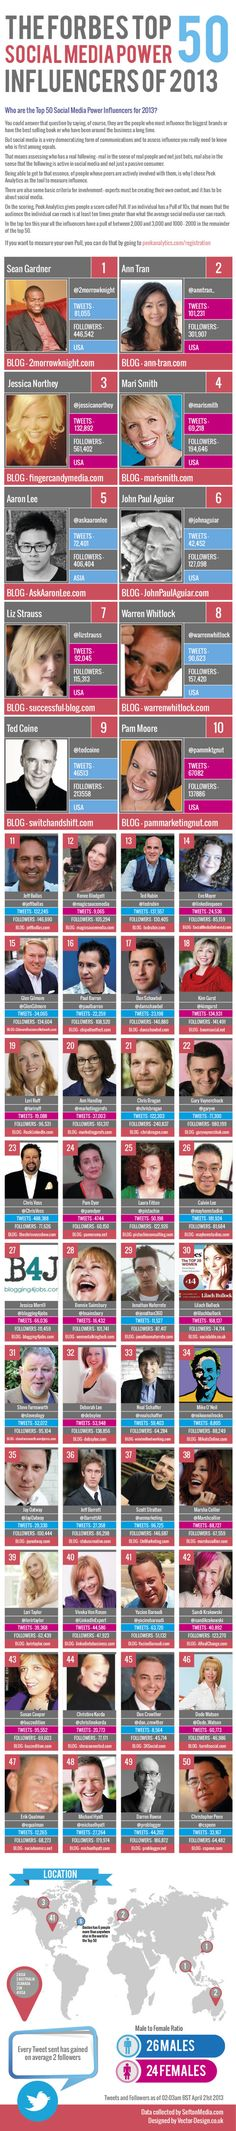 Forbes Top 50 Social Media influencers 2013